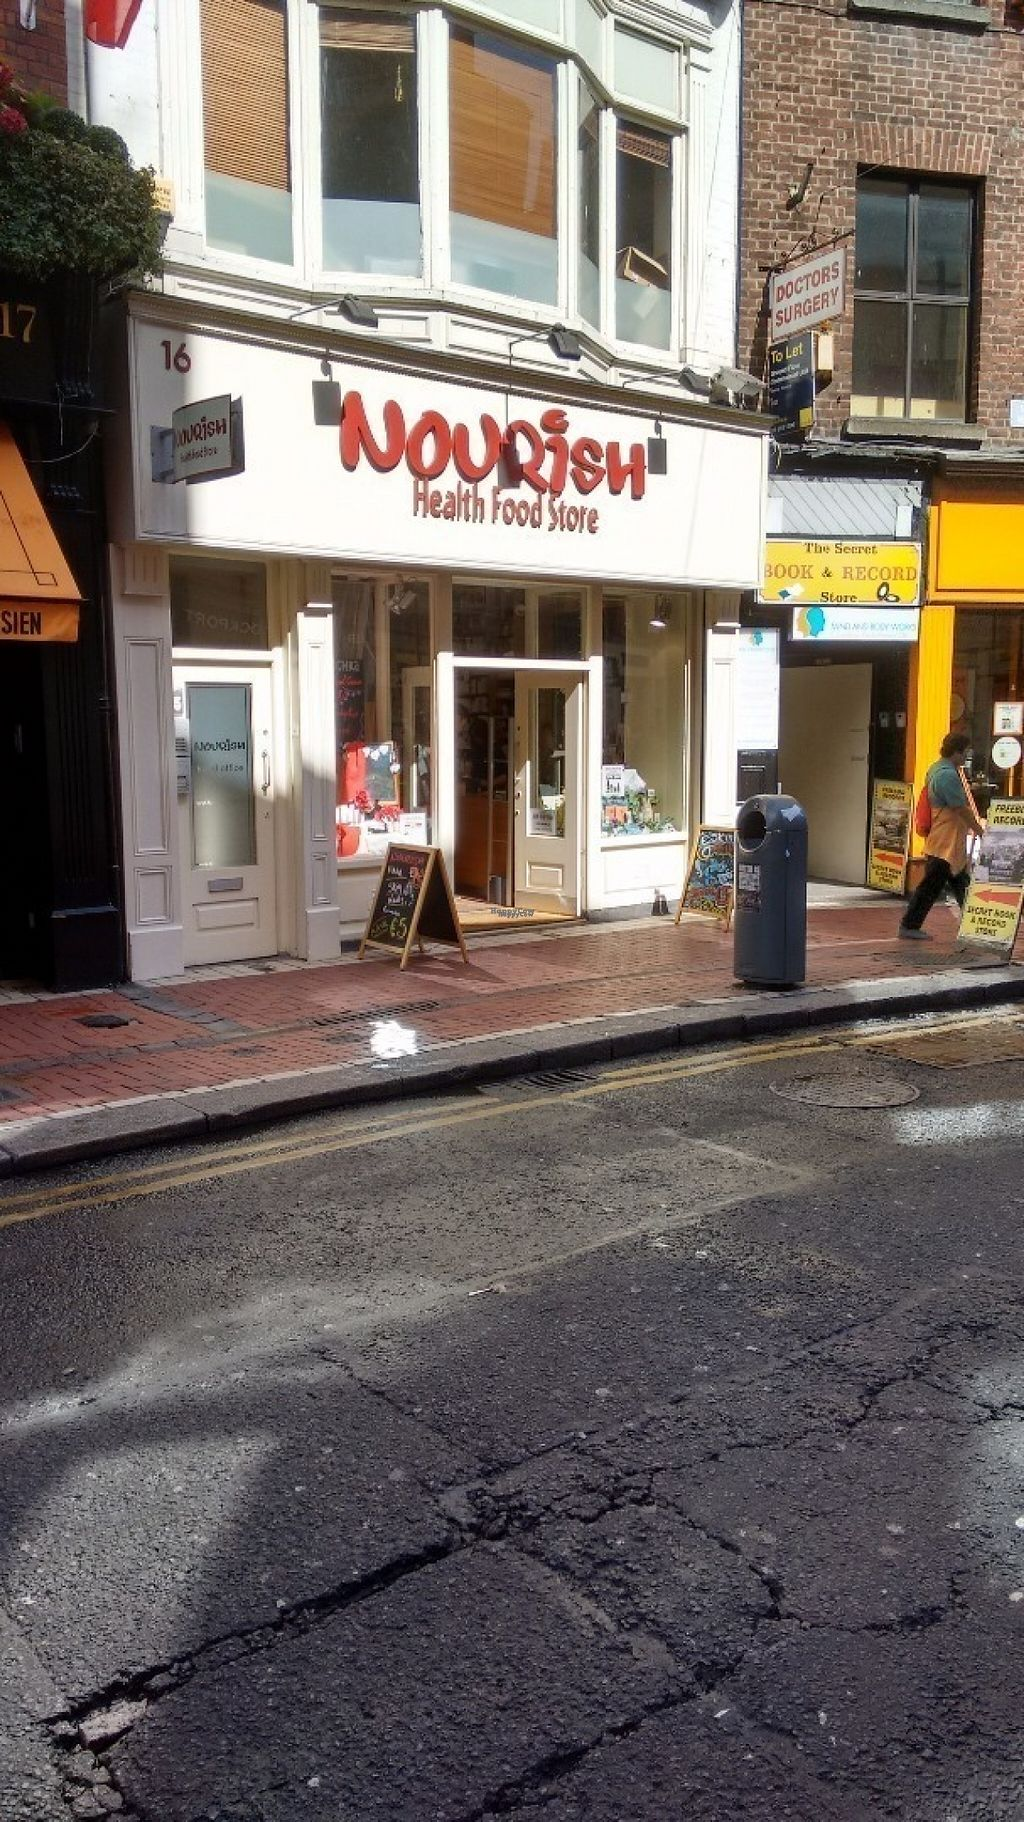 """Photo of Nourish - Wicklow Street  by <a href=""""/members/profile/craigmc"""">craigmc</a> <br/>Exterior <br/> August 19, 2016  - <a href='/contact/abuse/image/12471/170035'>Report</a>"""